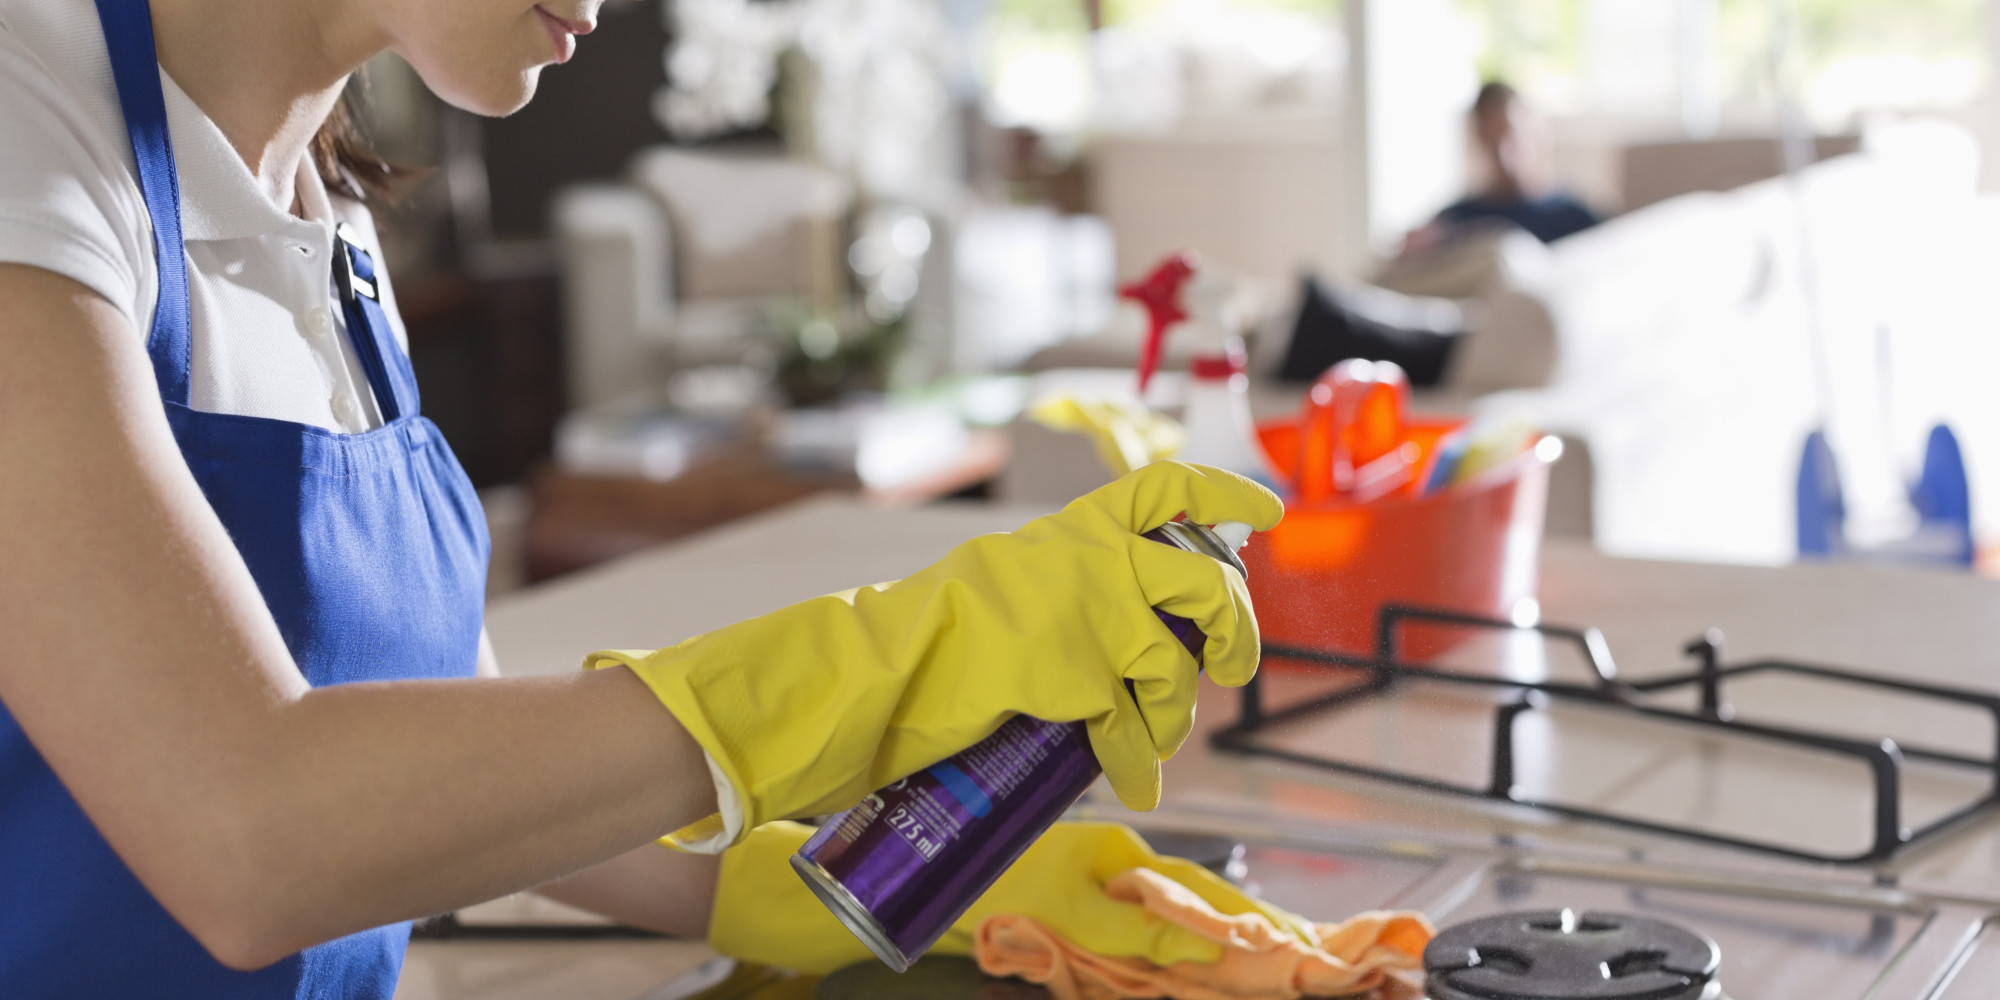 Professional Cleaning Services In Hertfordshire London